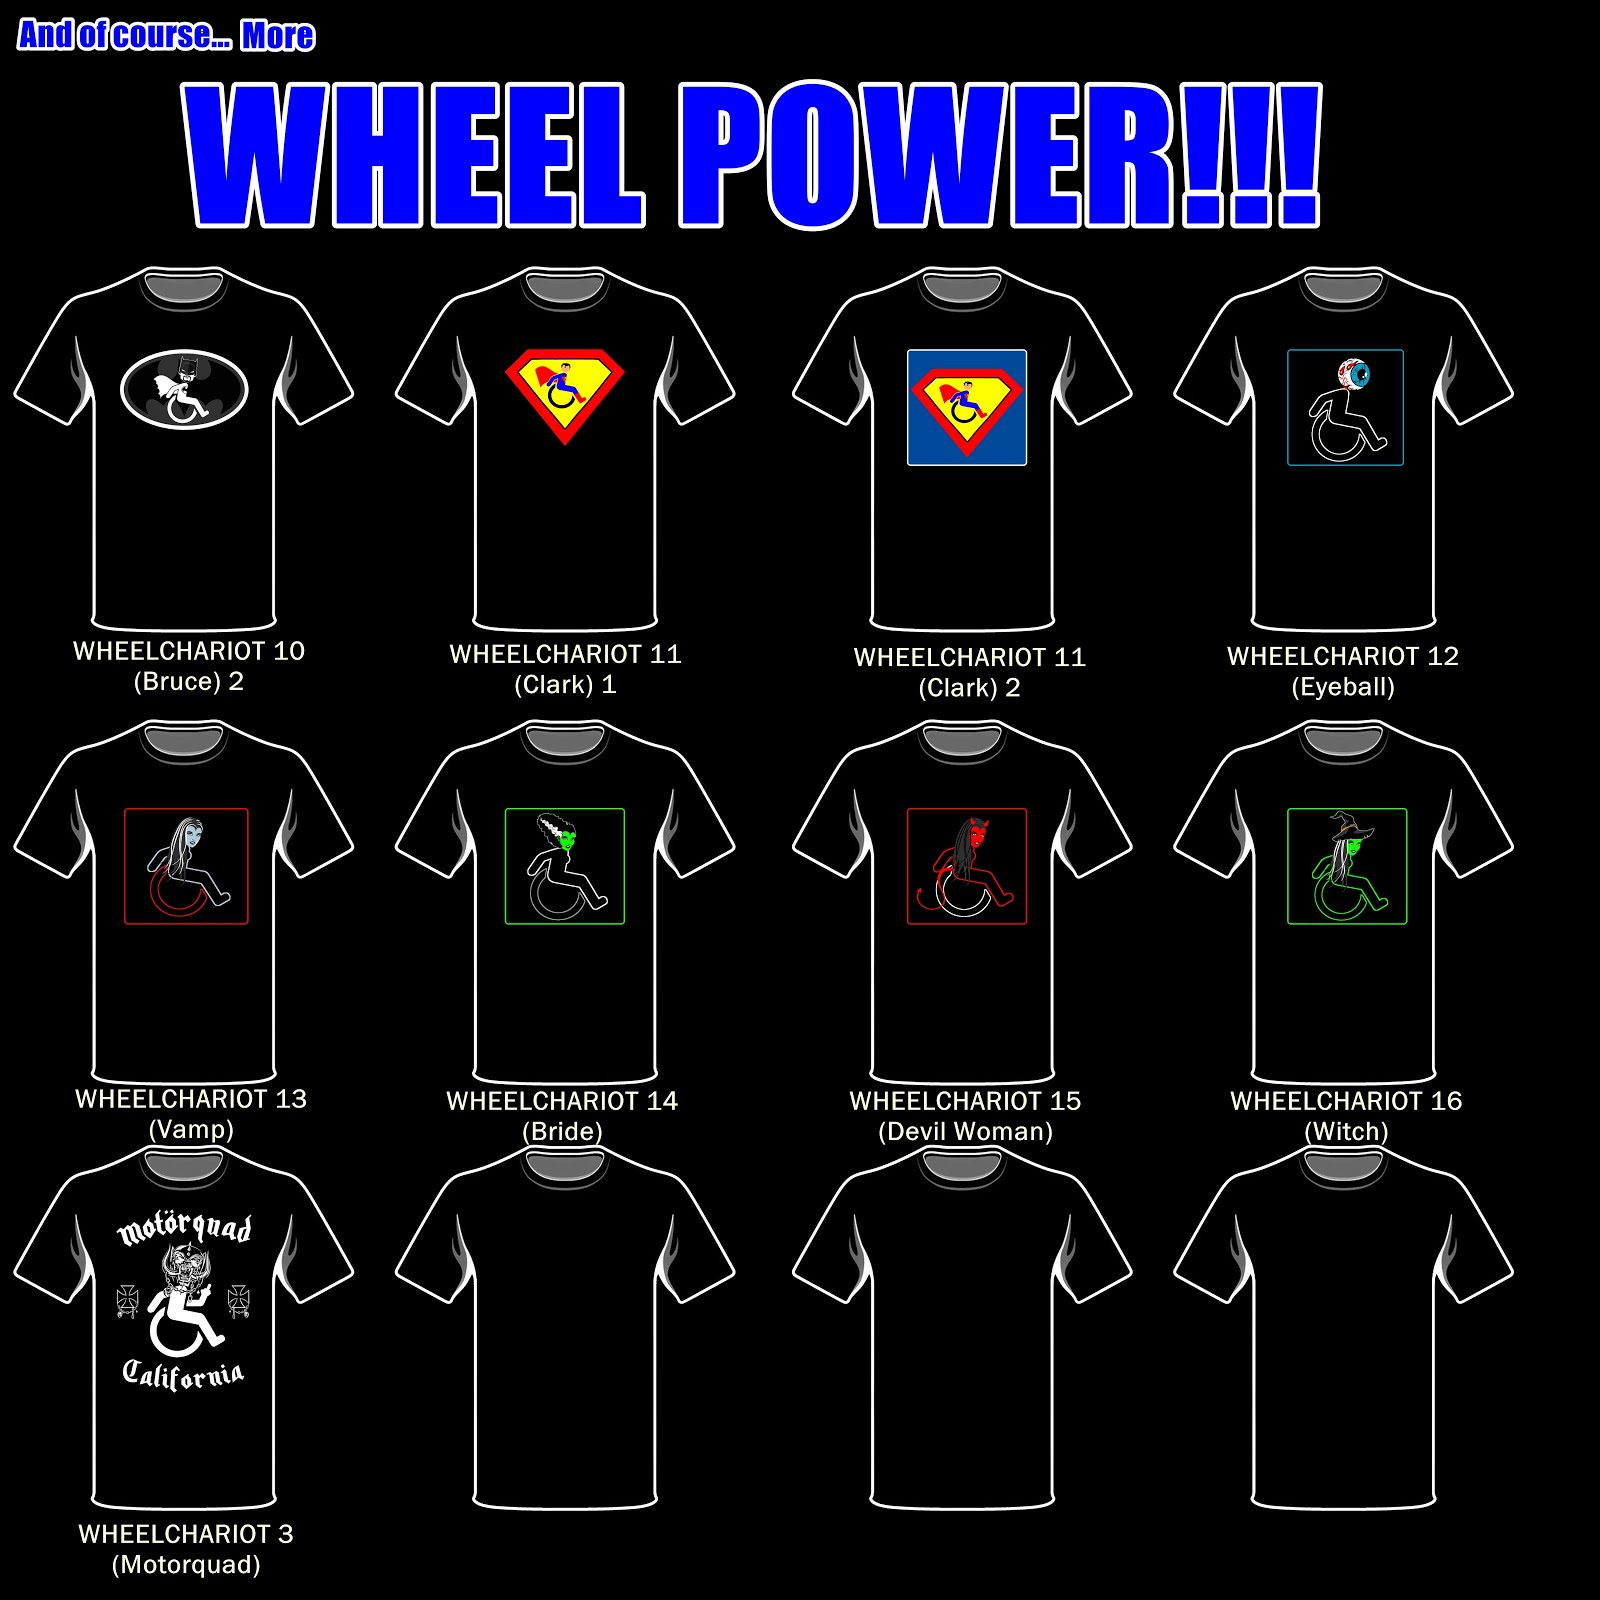 Wheel POWER 2